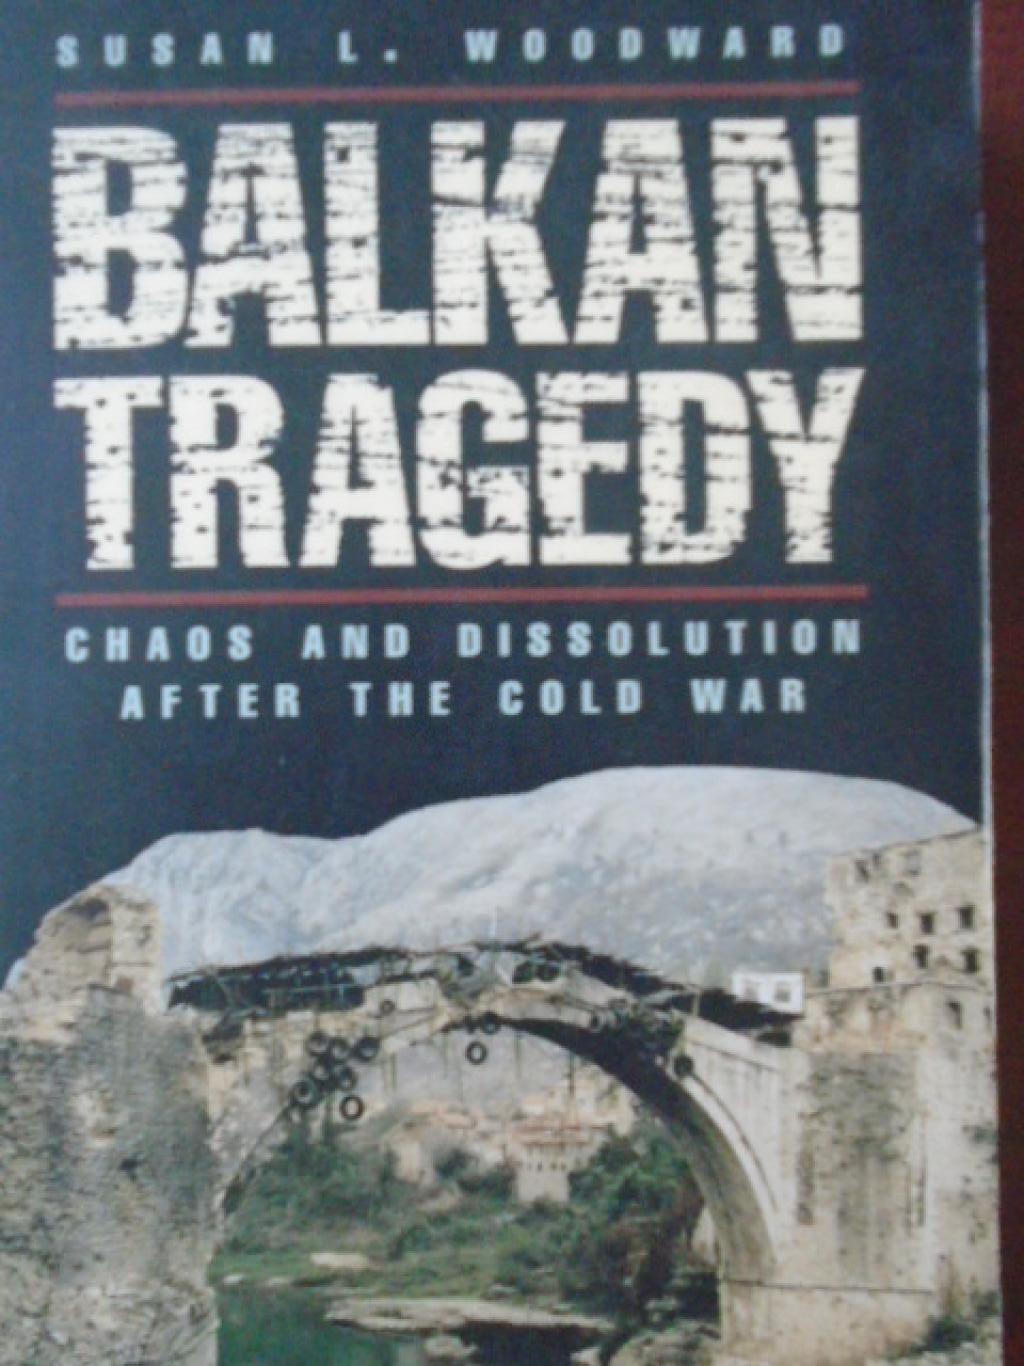 Balkan Tragedy: Chaos and Dissolution after the Cold War, Susan L. Woodward